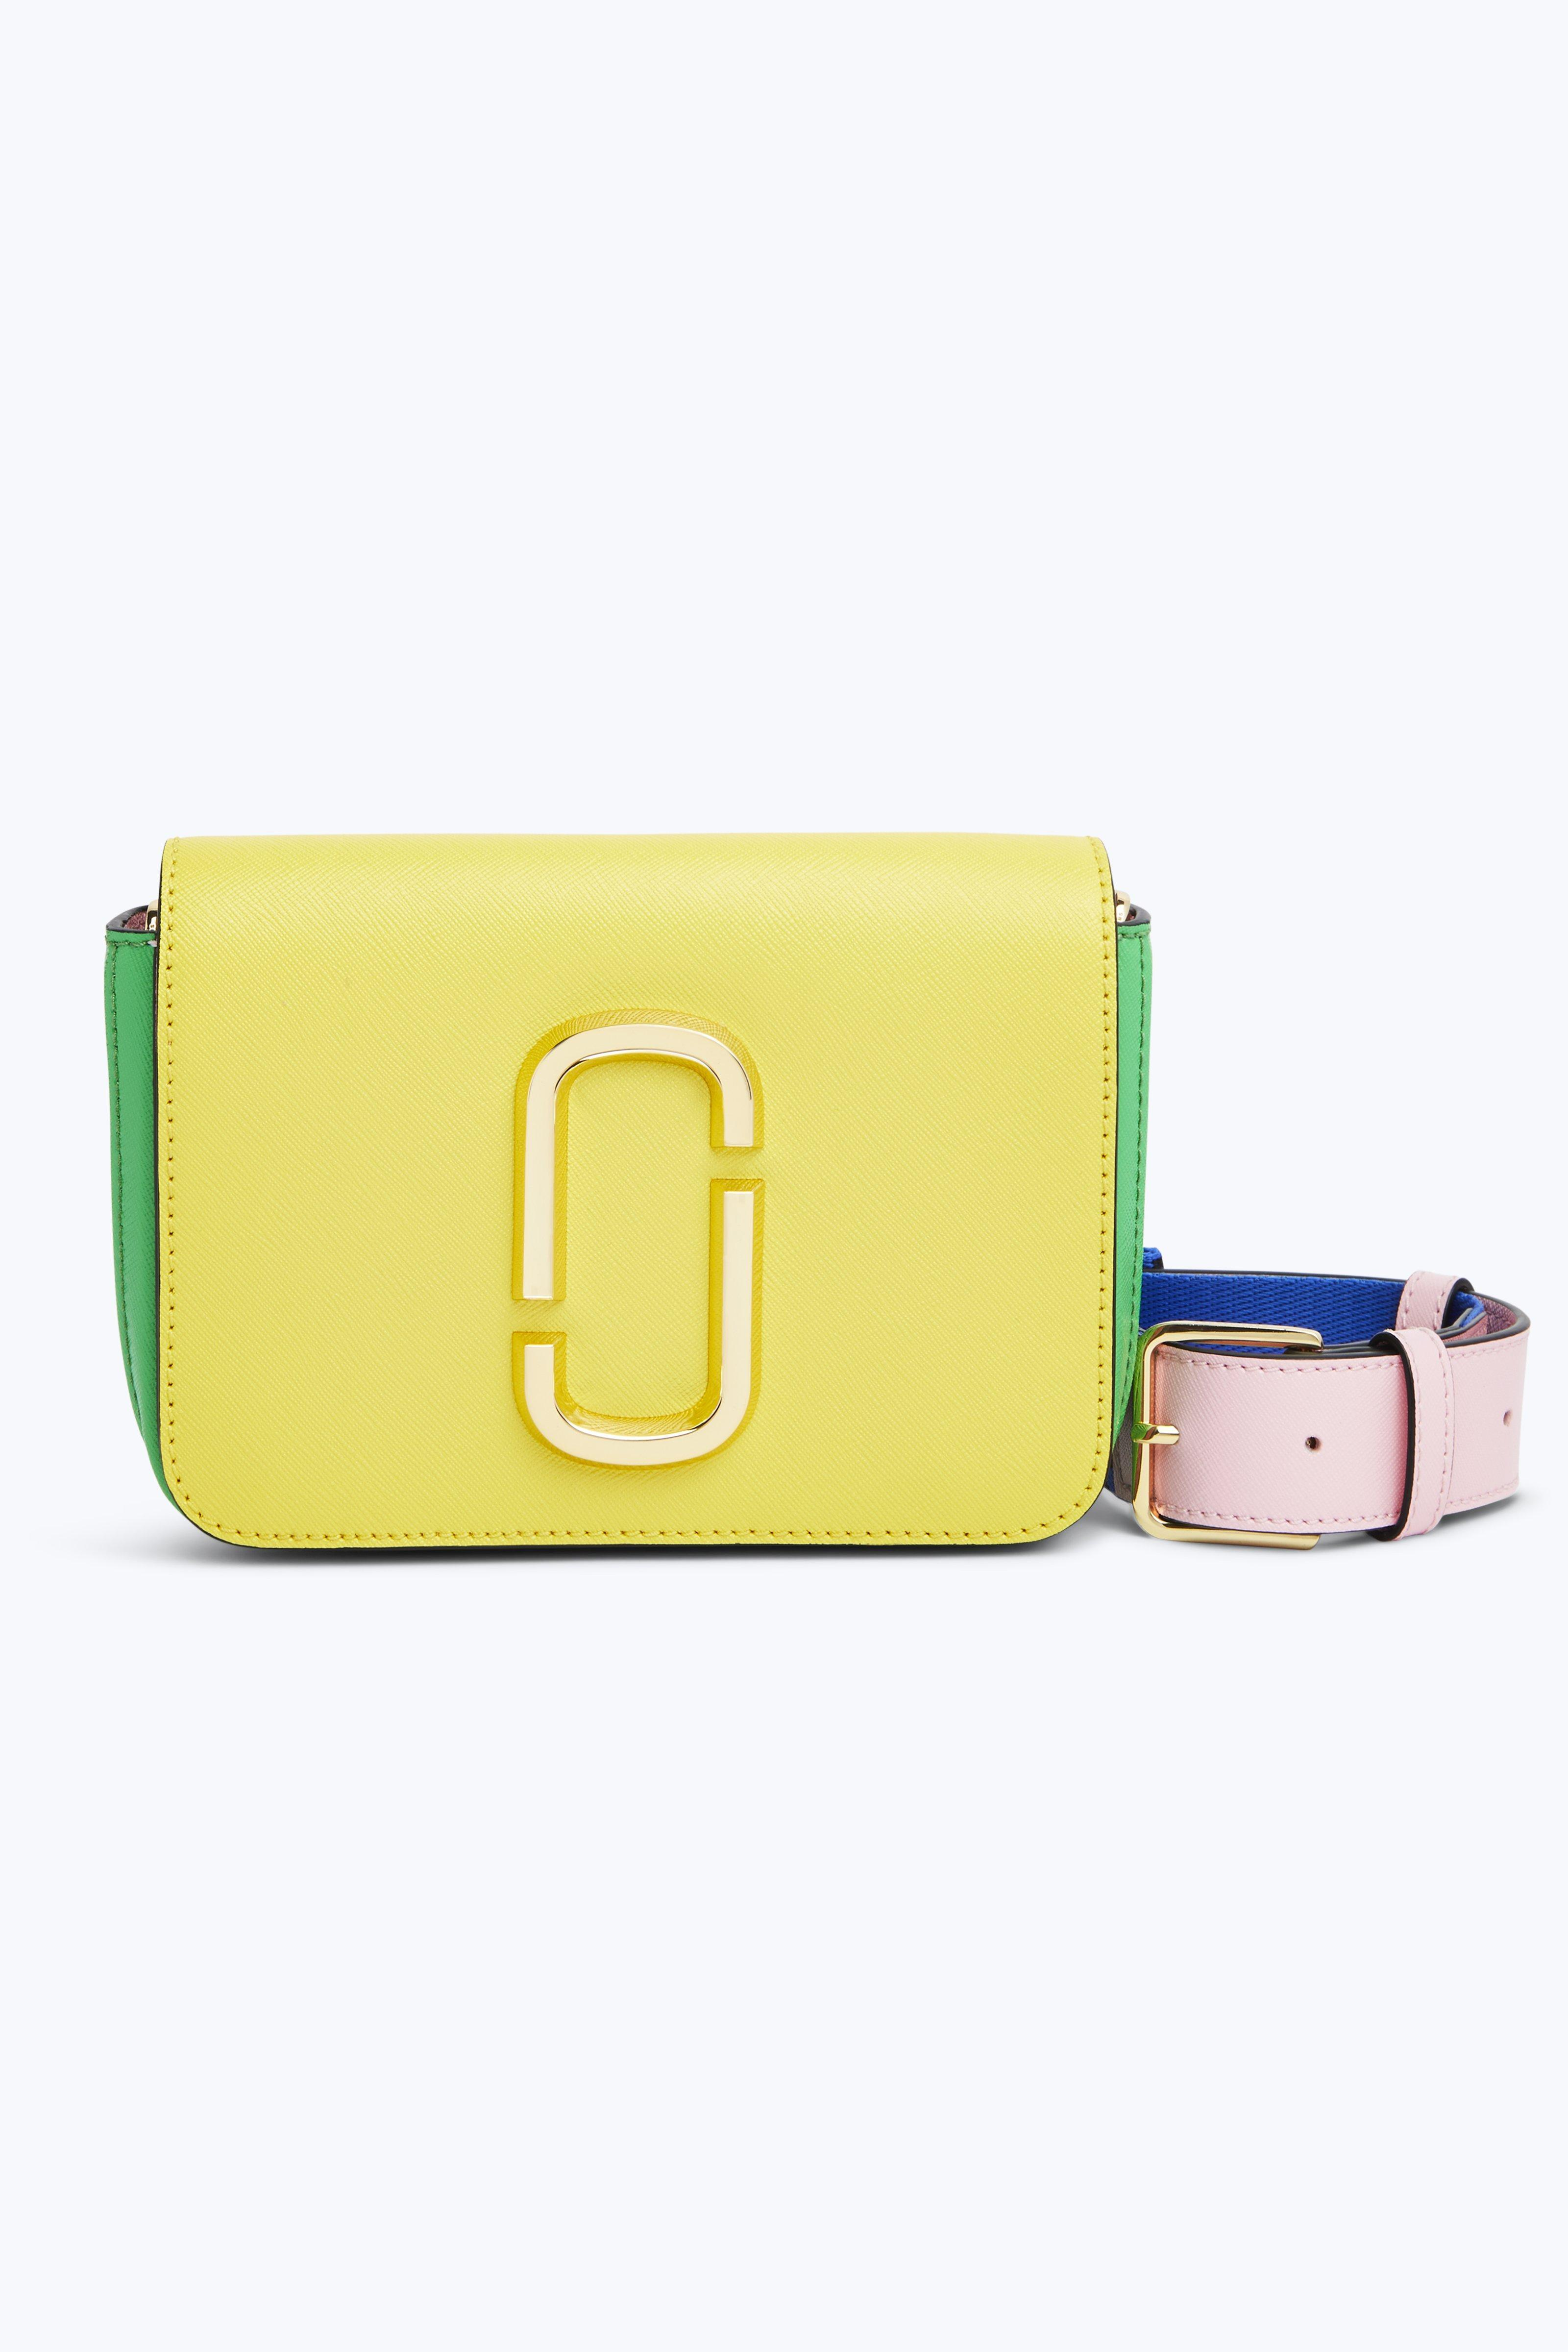 7cdecf395d27 Marc Jacobs Saffiano Leather Hip Shot Convertible Shoulder Belt Bag In  Daisy Yellow Multi